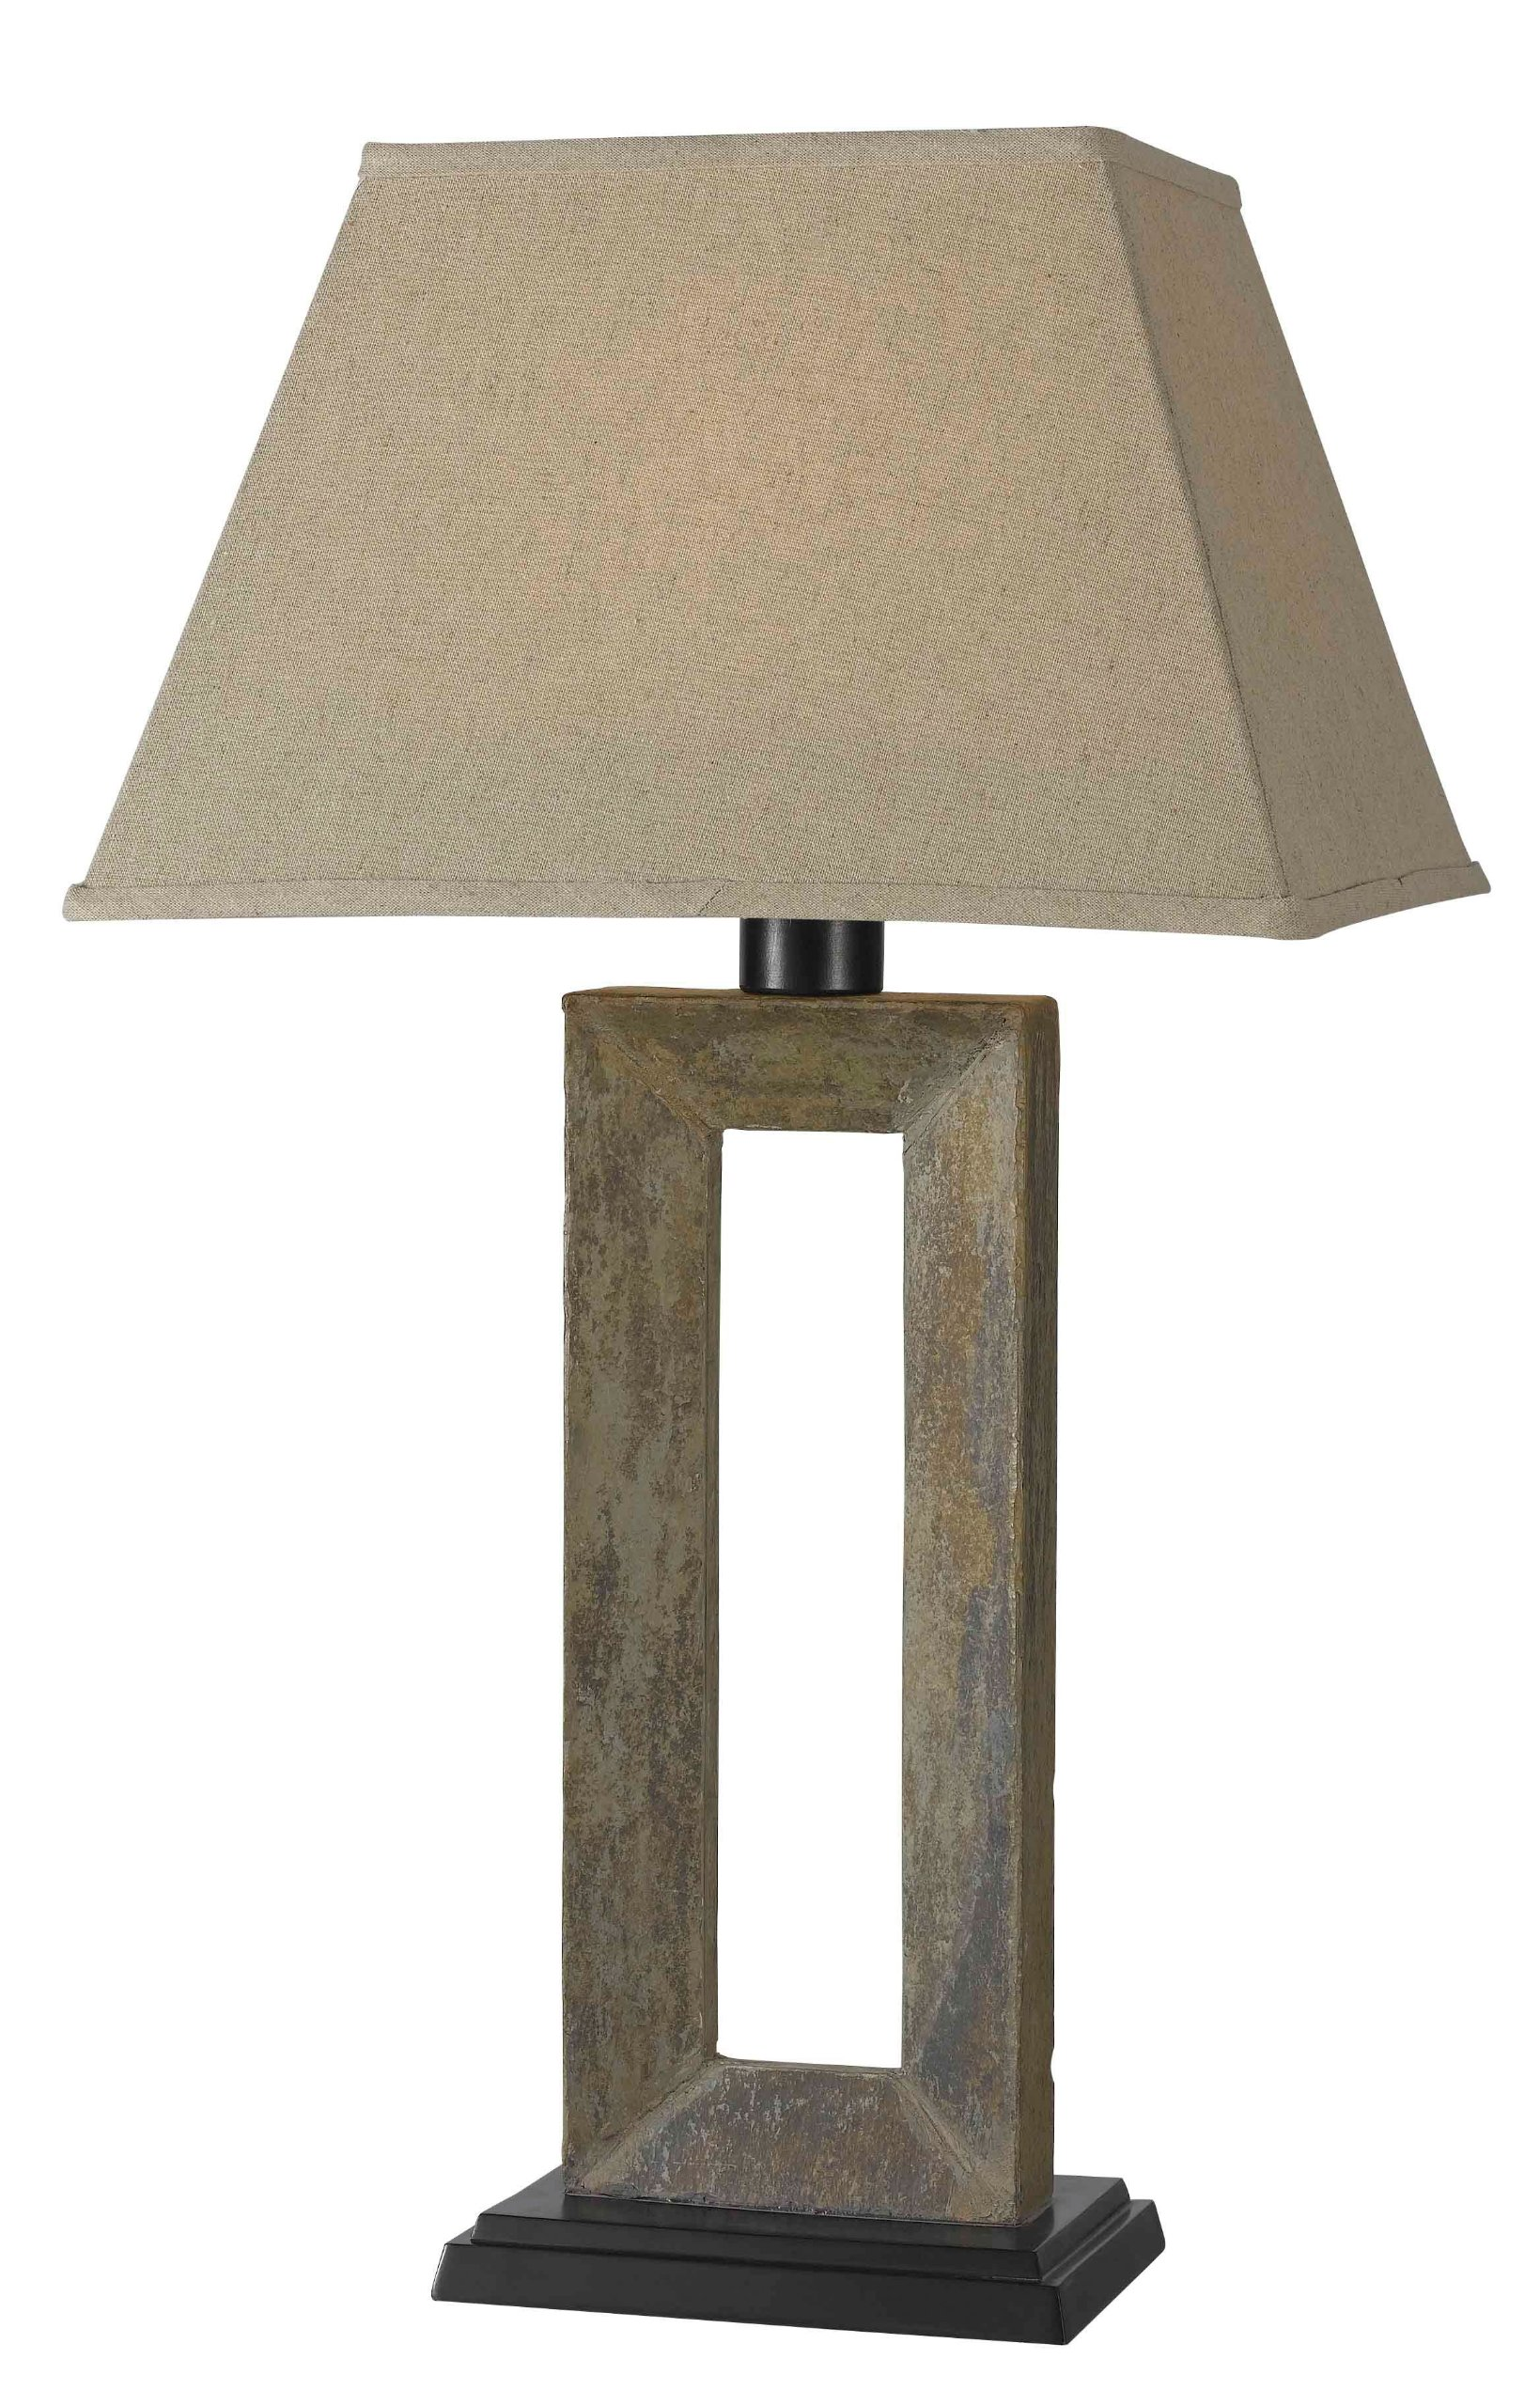 Kenroy Home 30515SL Egress Outdoor Table Lamp by Kenroy Home